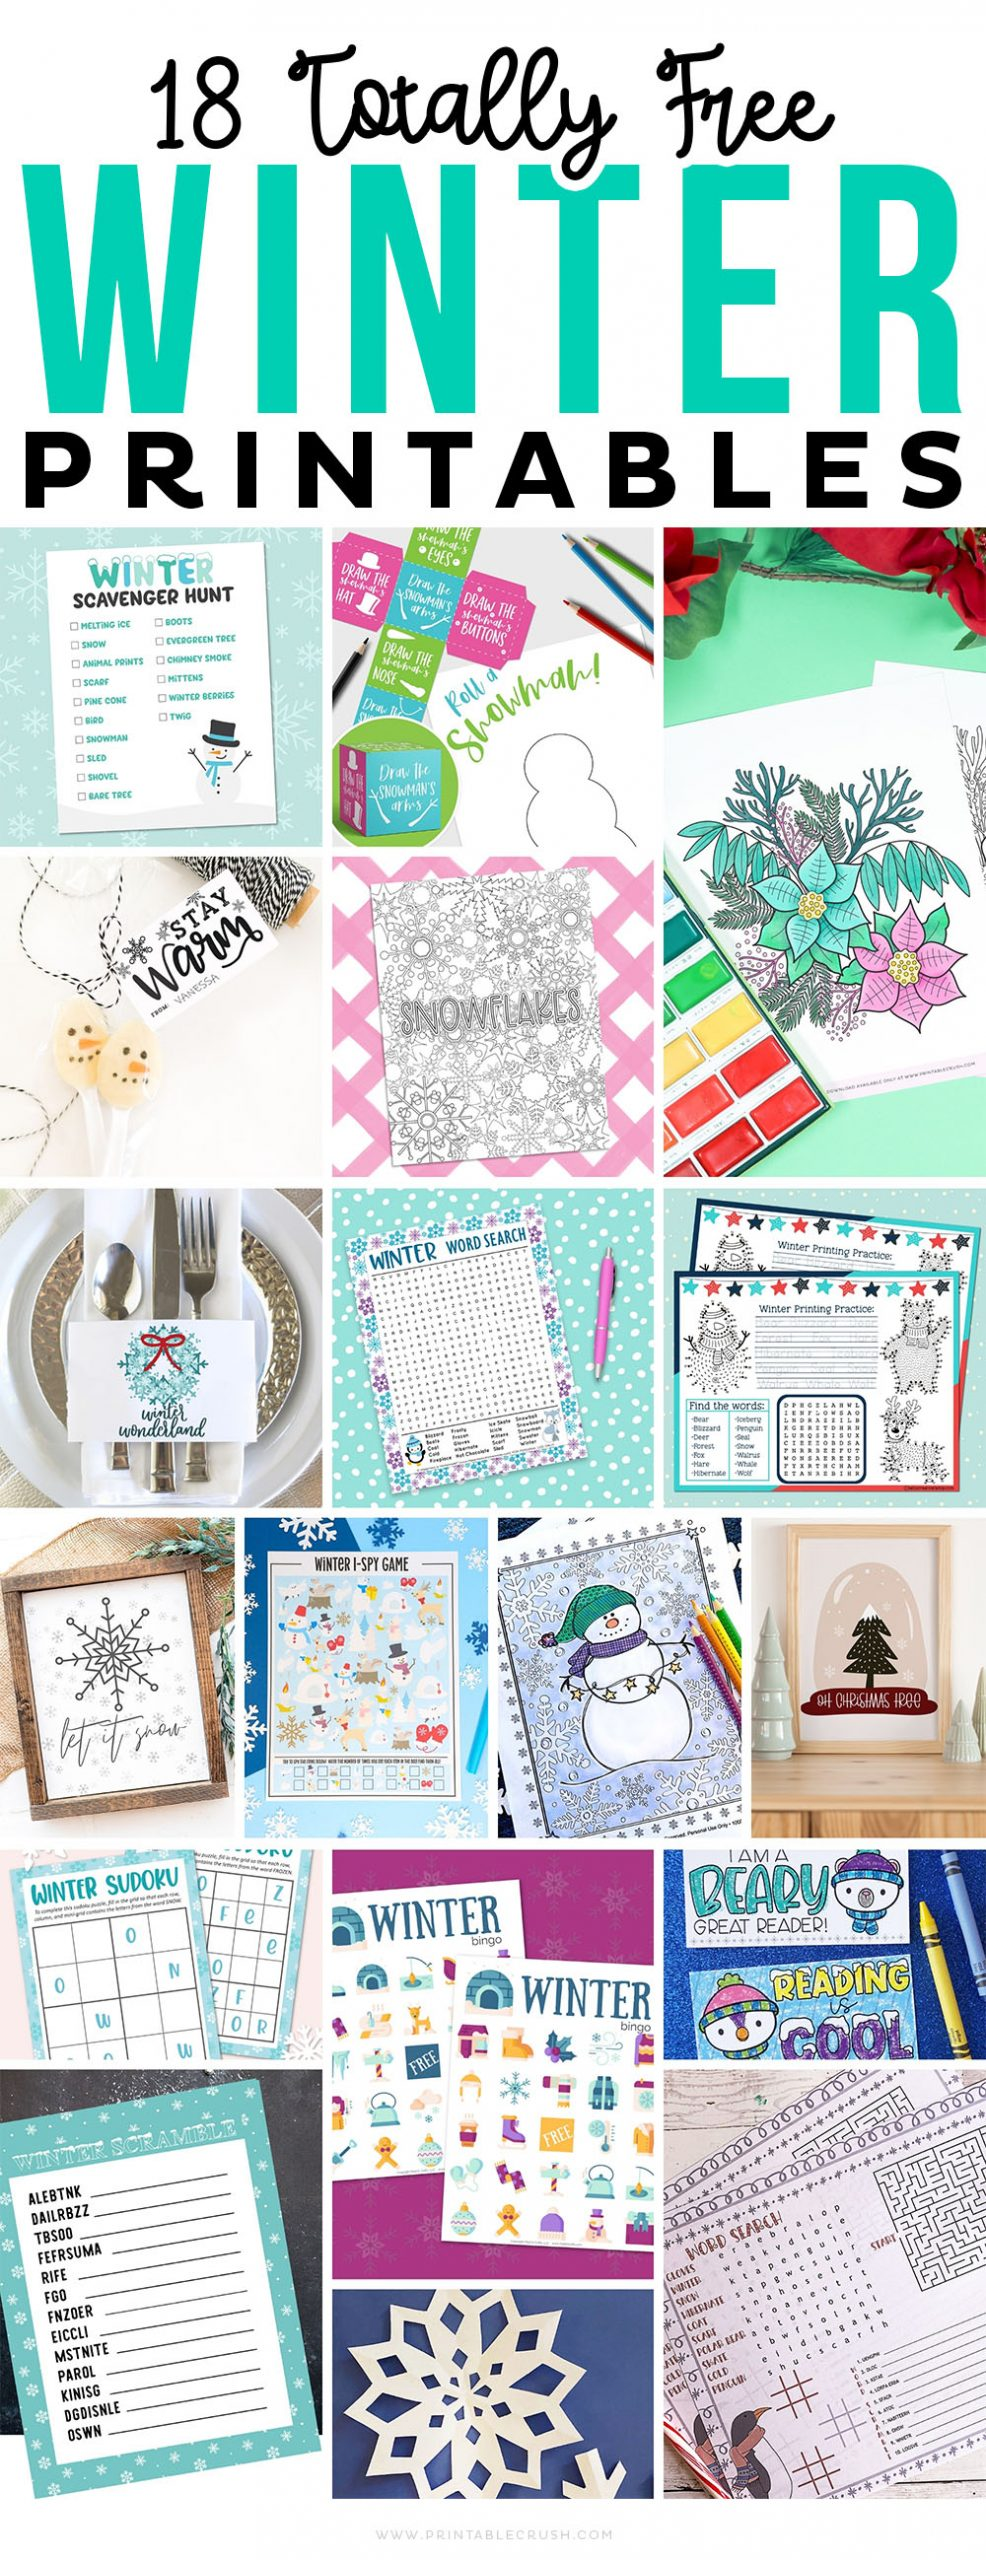 18 Free Winter Printables - Holiday Gift Printables - Free Winter Printable Activities - Free Printable Winter Activities - Printable Crush #winterprintables #winteractivities